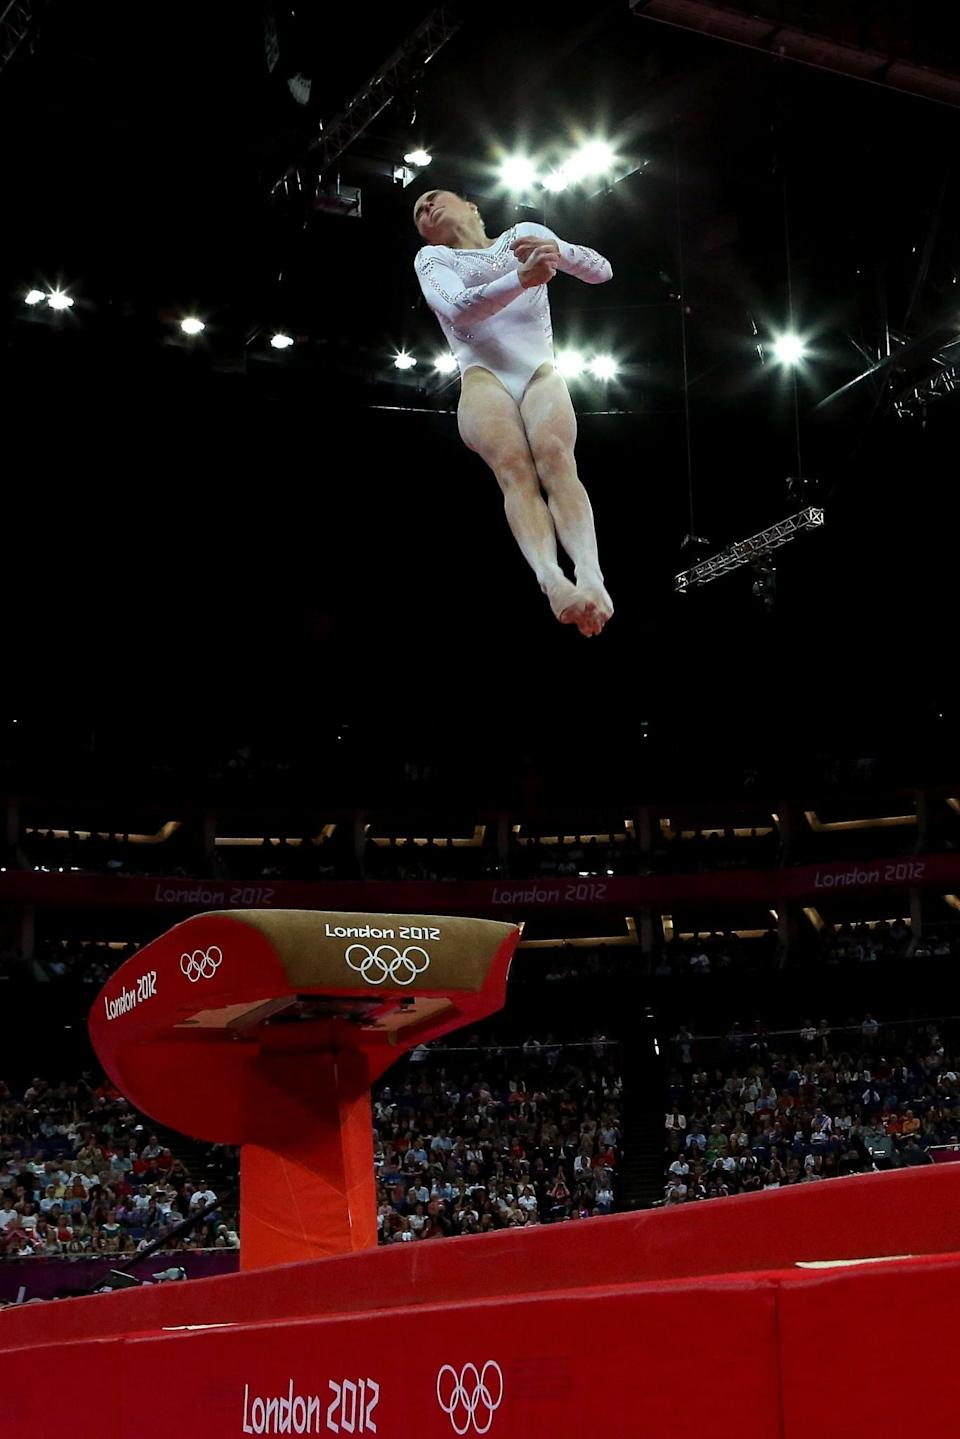 <p>McKayla Maroney Maroney of United States competes on the vault during the Artistic Gymnastics Women's Vault final on Day 9 of the London 2012 Olympic Games at North Greenwich Arena on August 5, 2012 in London, England. (Photo by Ronald Martinez/Getty Images) </p>